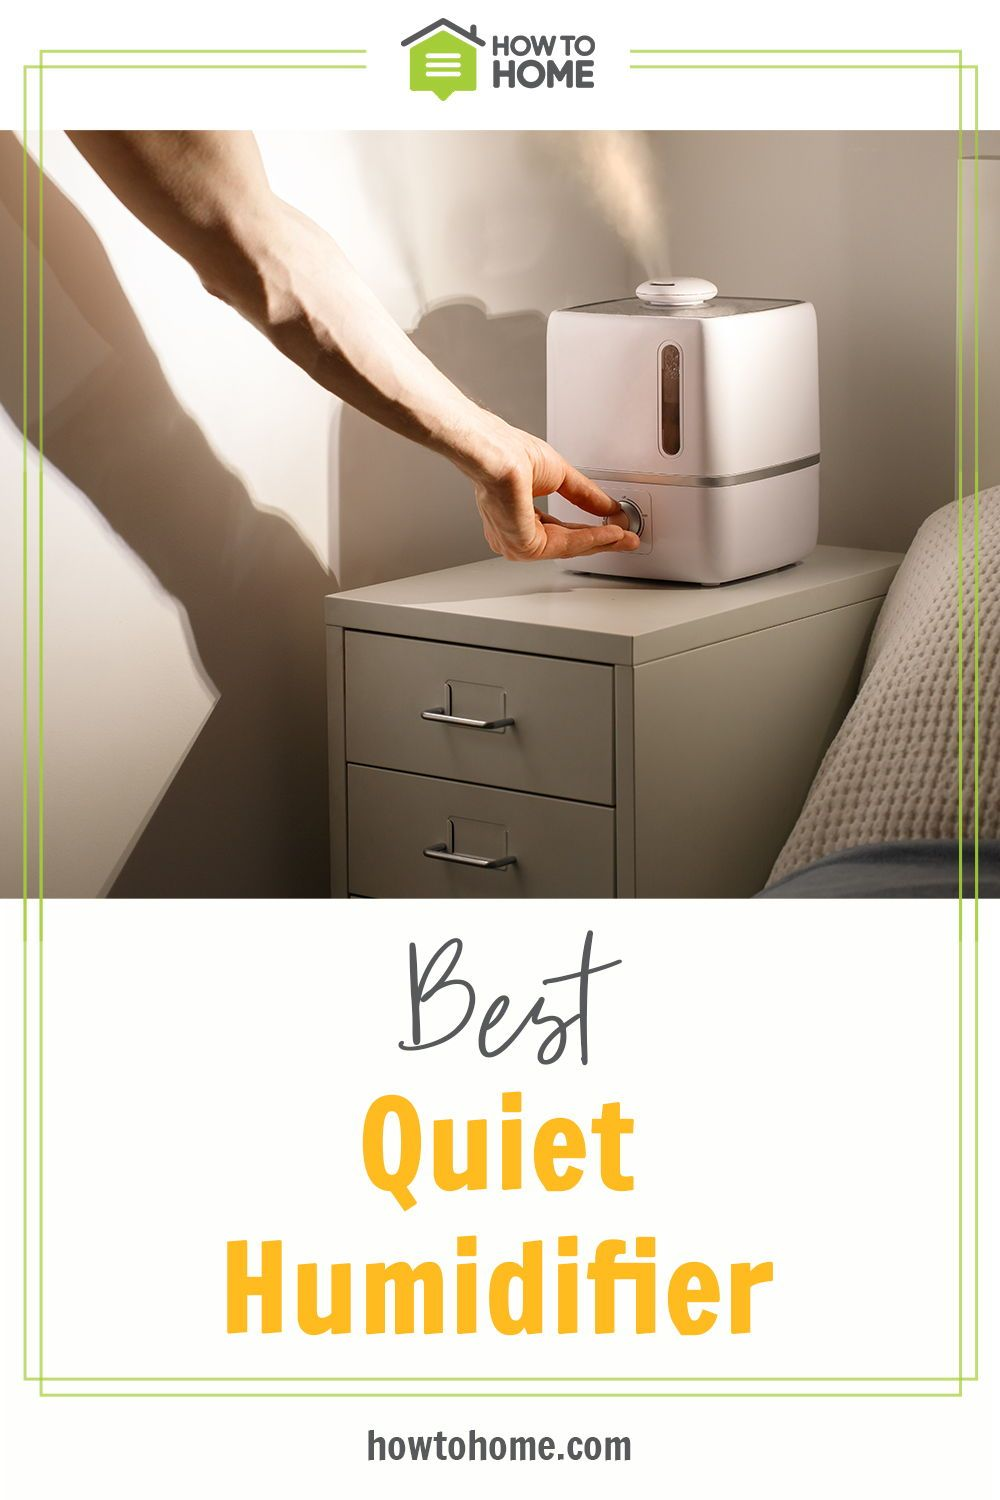 Best Quiet Humidifier (With images) Humidifier, Warm